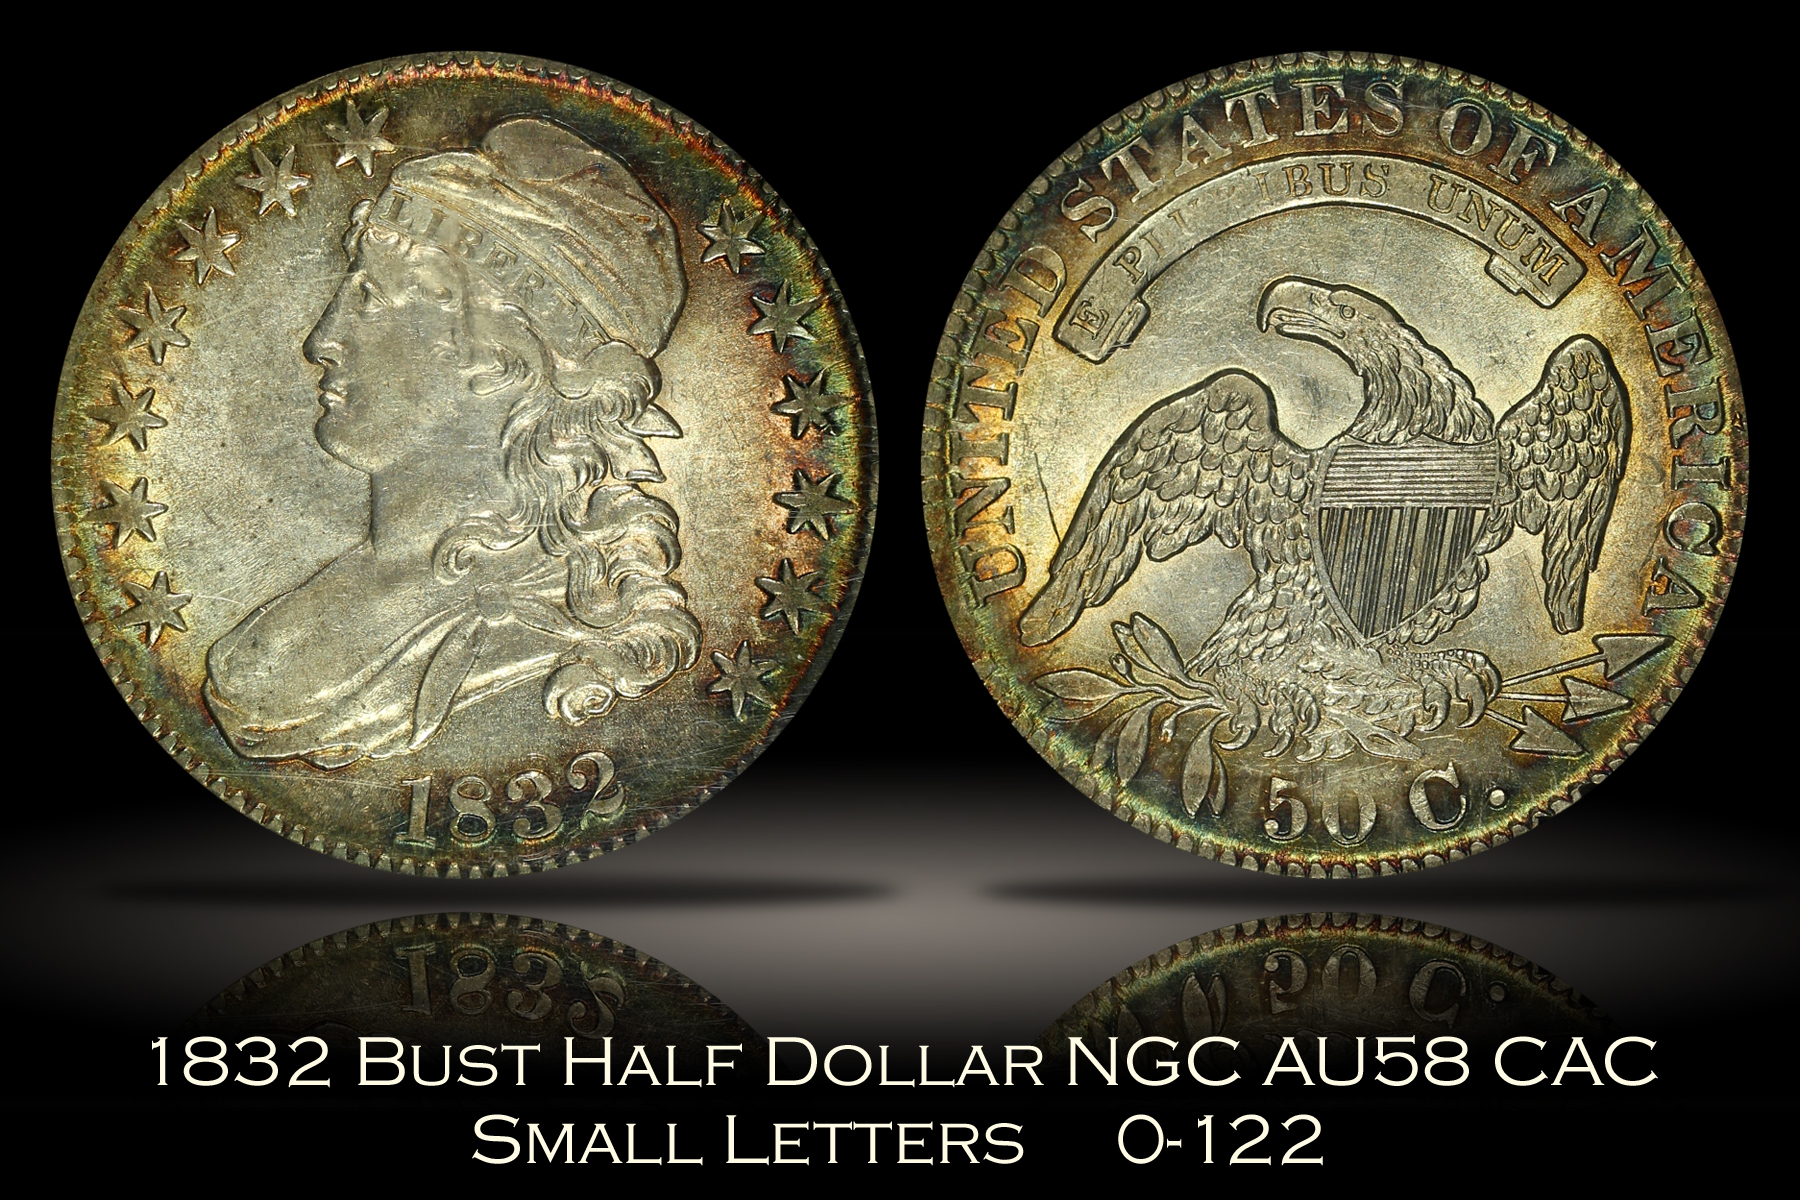 1832 Capped Bust Half Dollar O-122 Small Letters NGC AU58 CAC